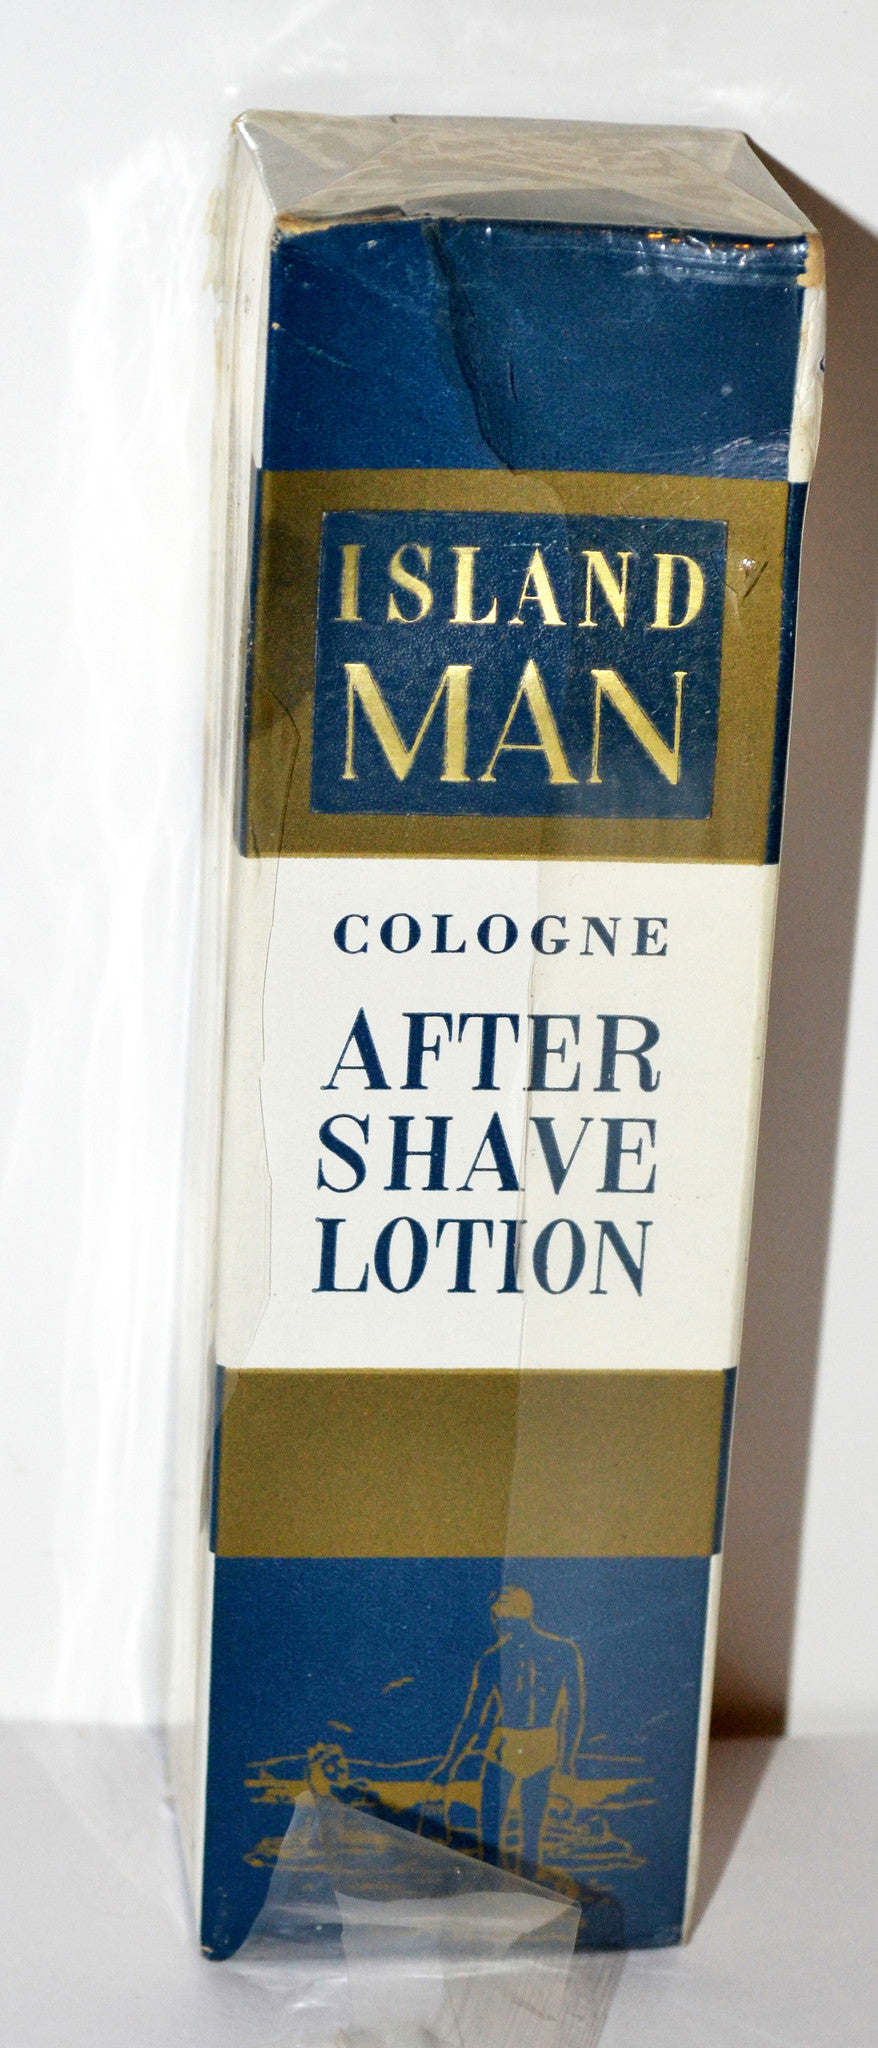 Island Man Cologne After Shave Lotion